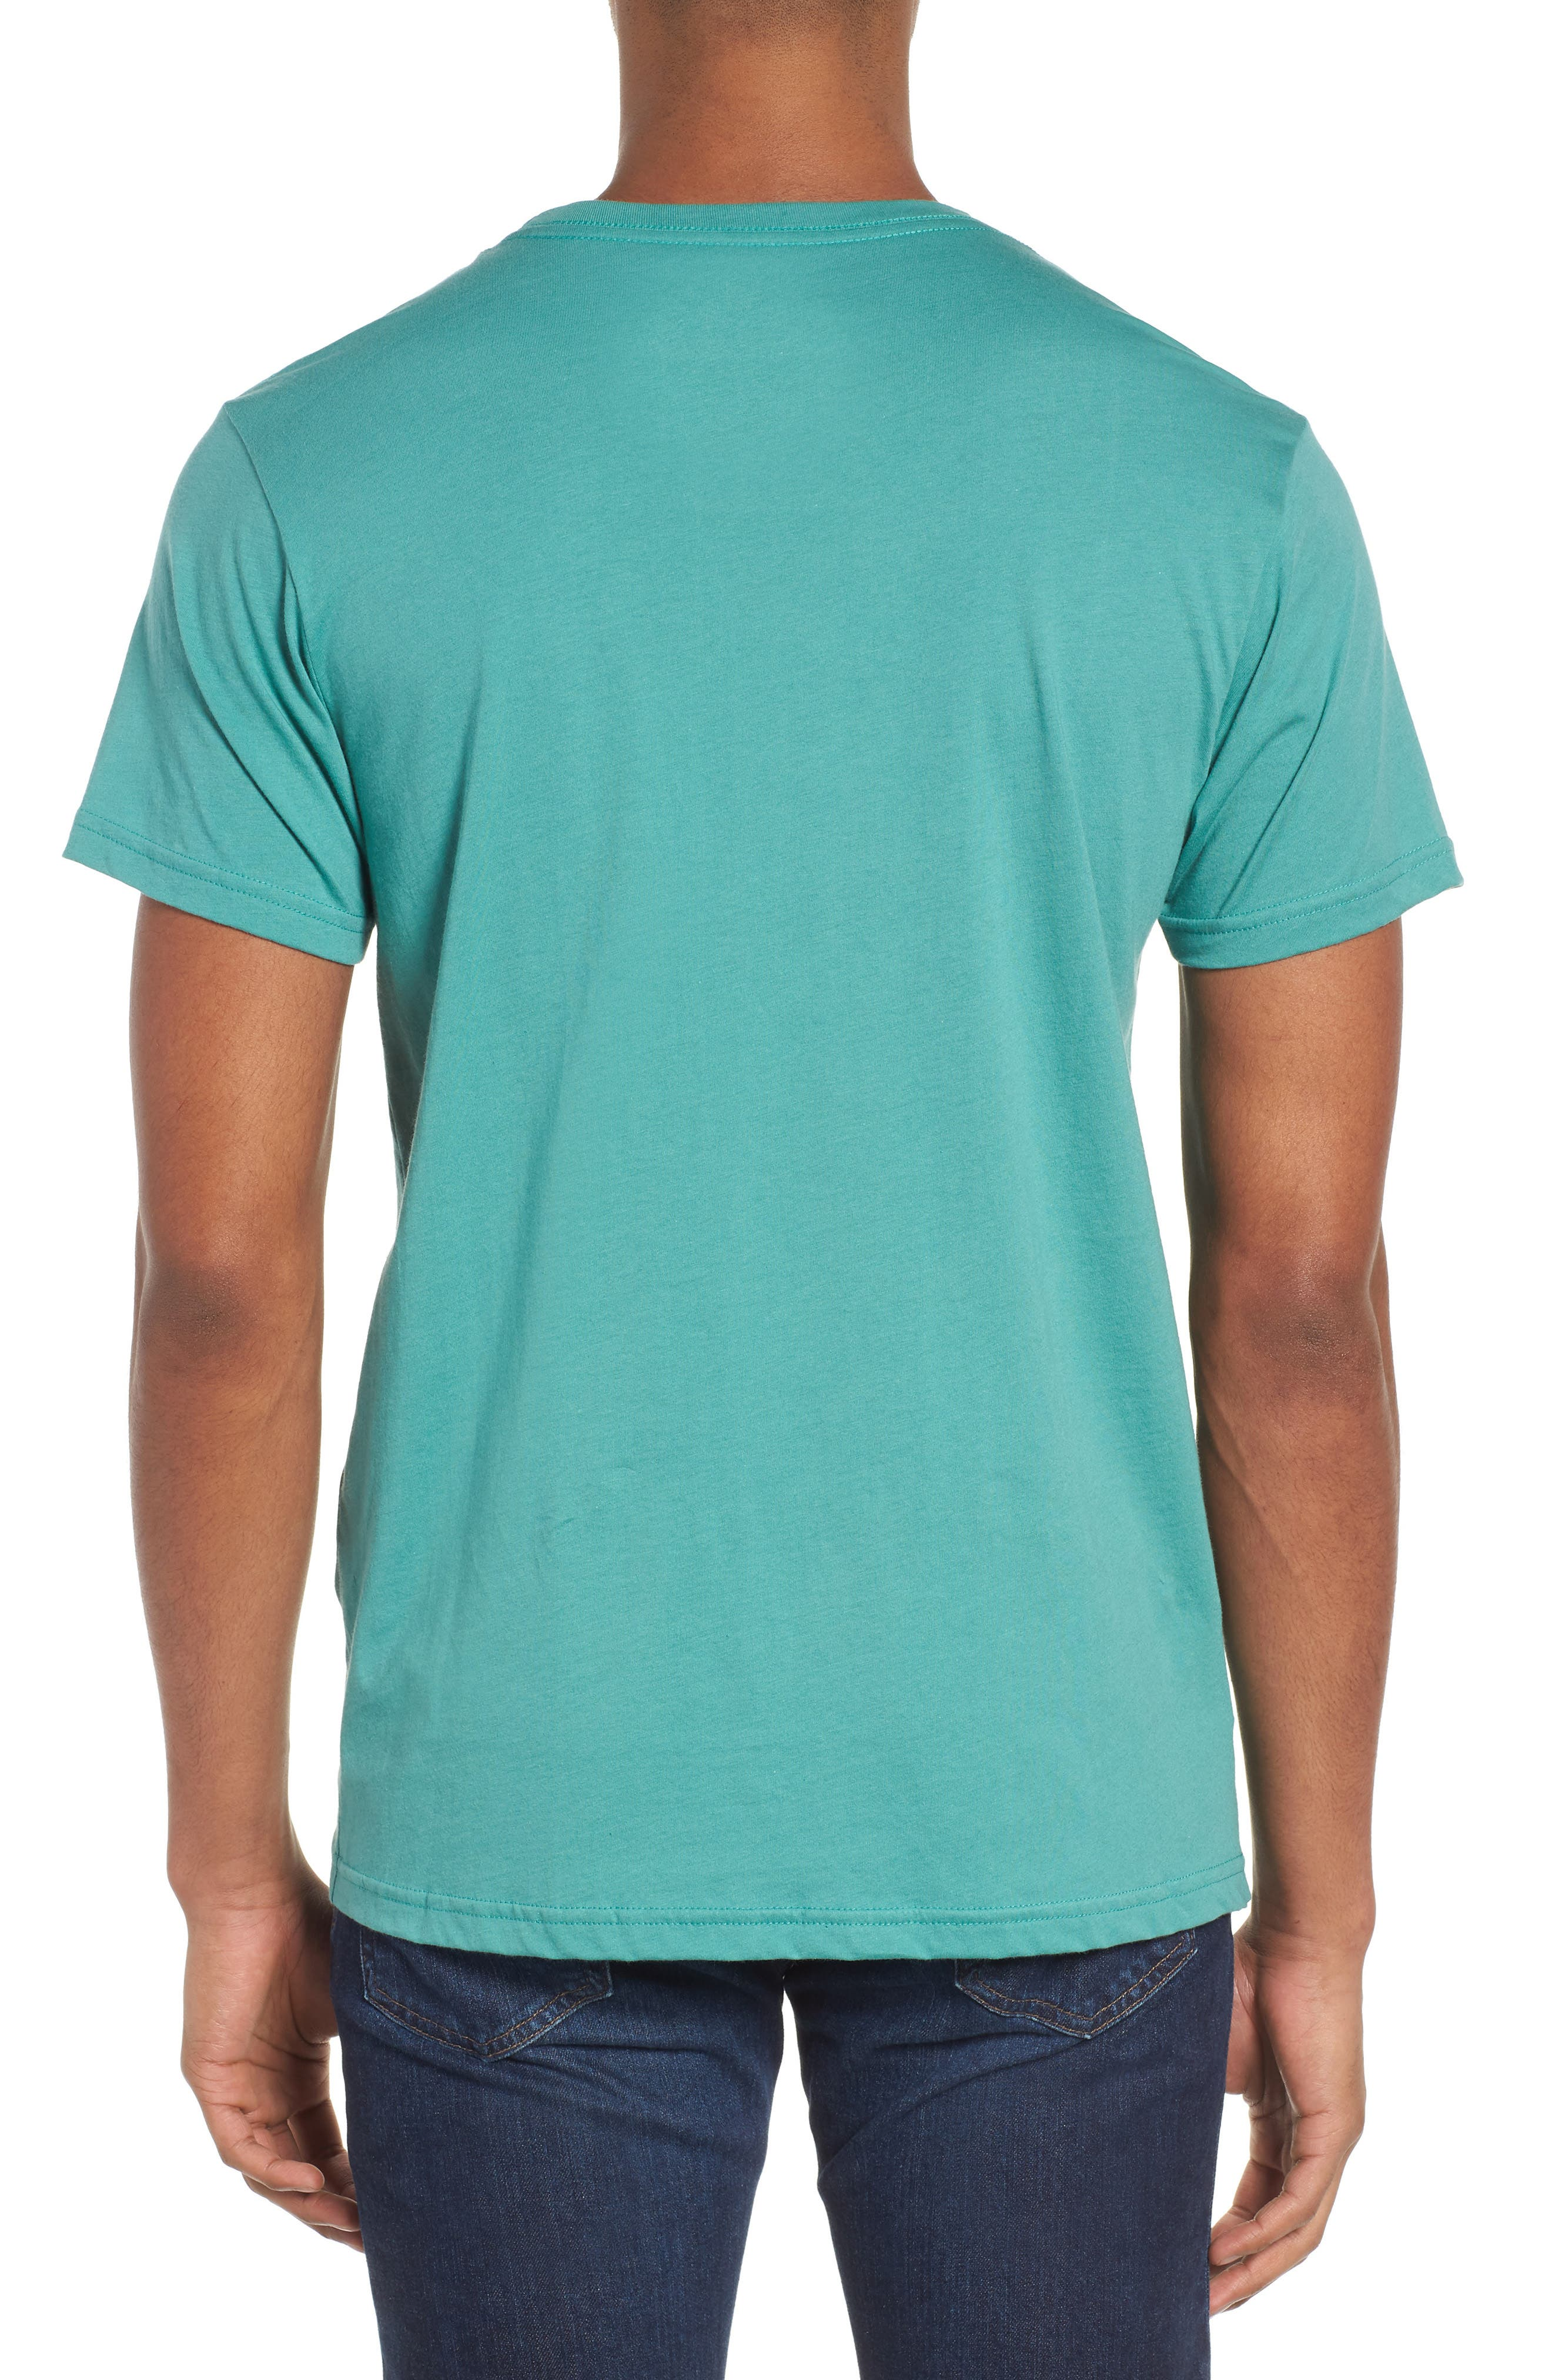 Up & Out Graphic Organic Cotton T-Shirt,                             Alternate thumbnail 2, color,                             Beryl Green